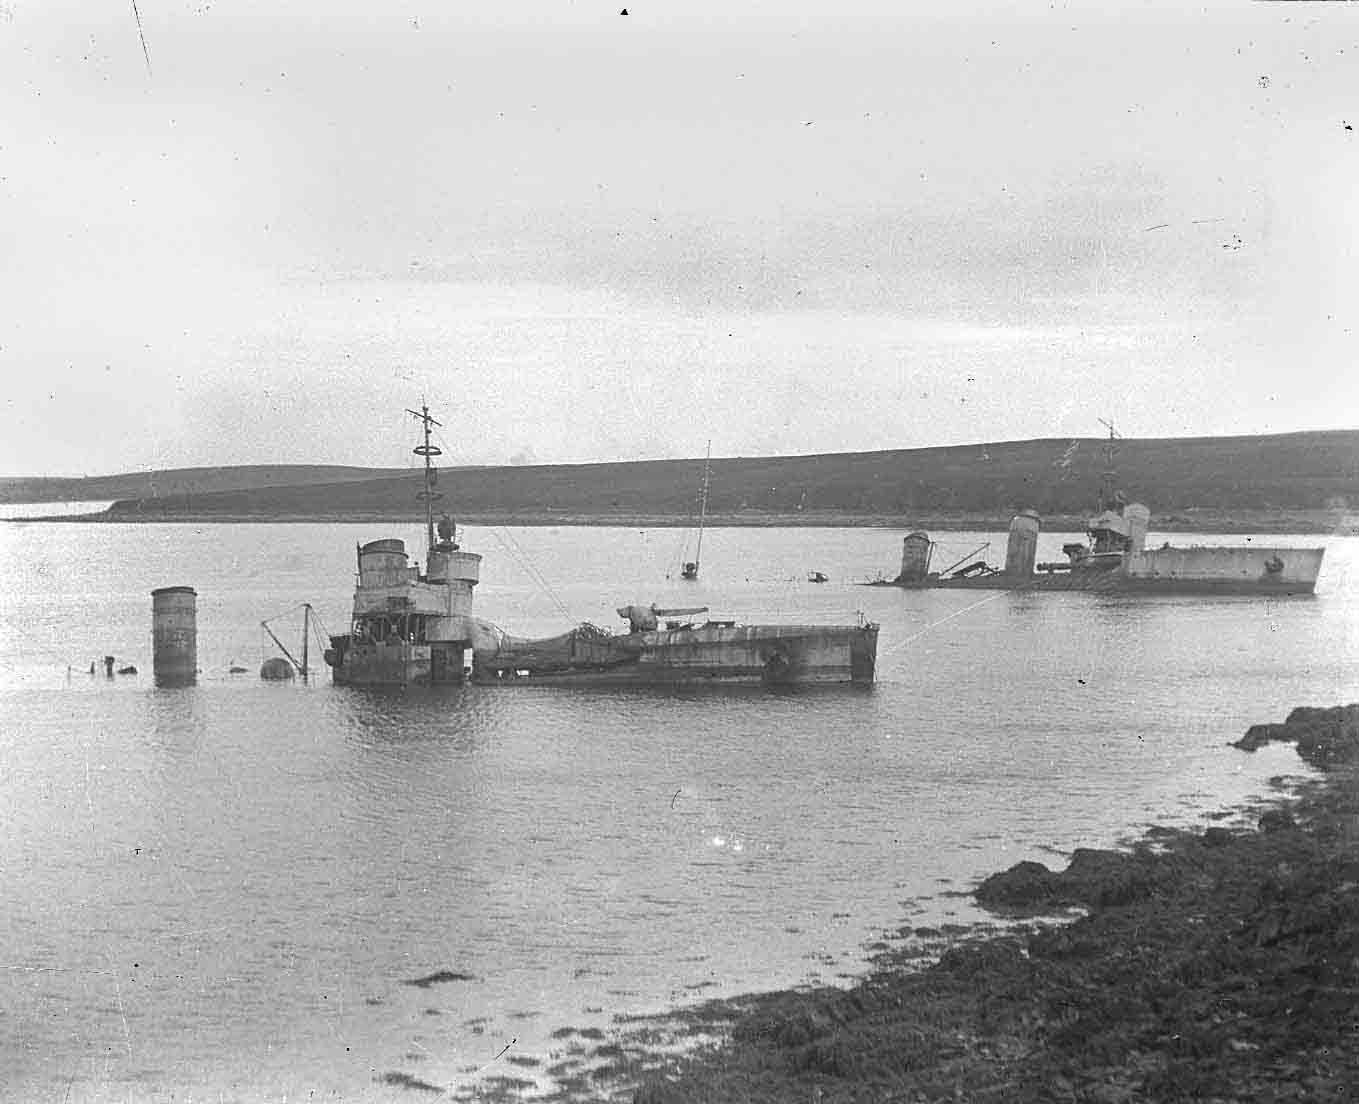 German destroyers ashore on Cava in Orkney - image courtesy of the Orkney Library and Archive